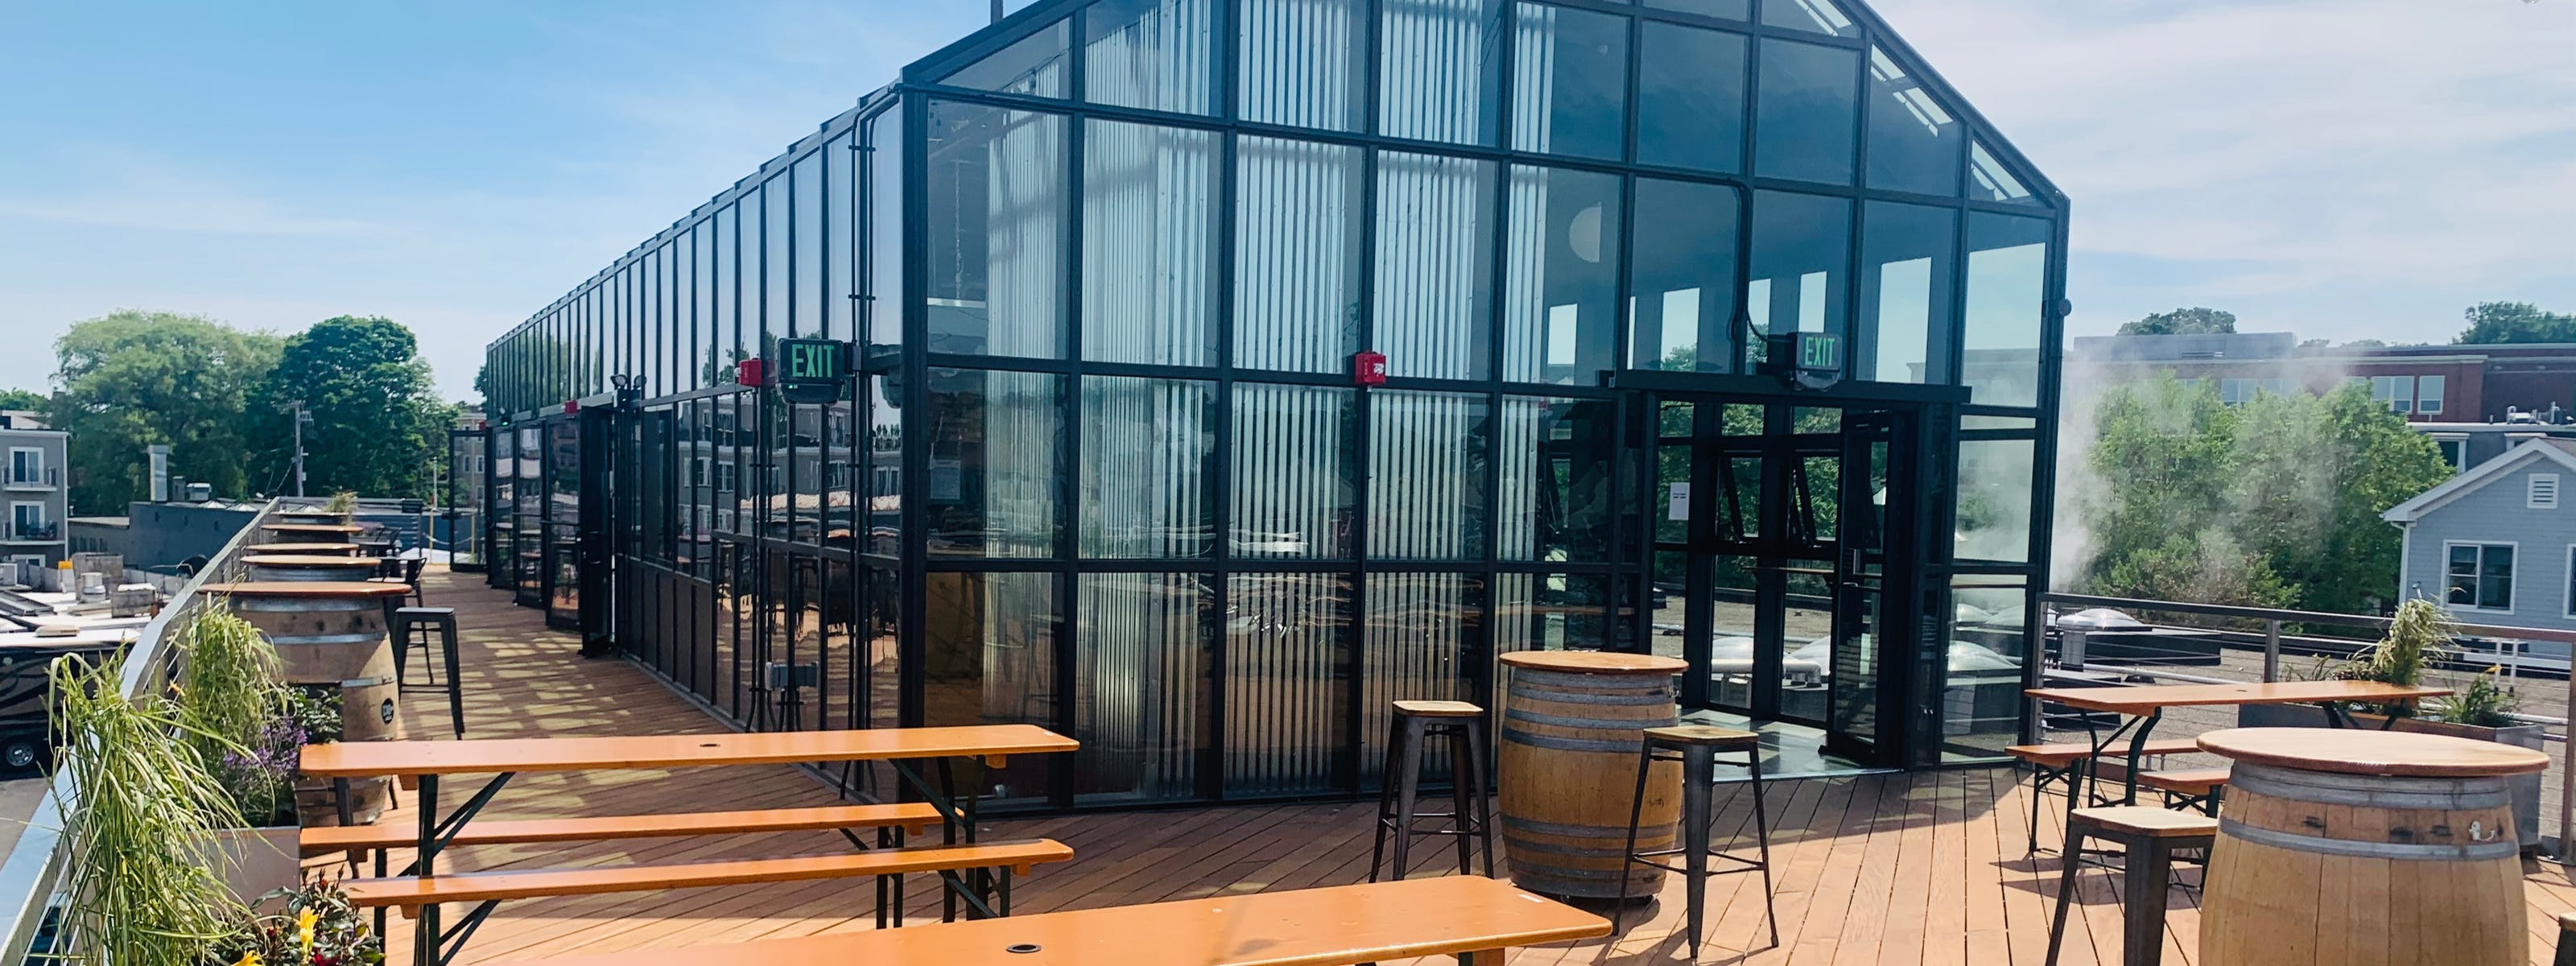 The Best Rooftop Bars In Boston - Boston - The Infatuation